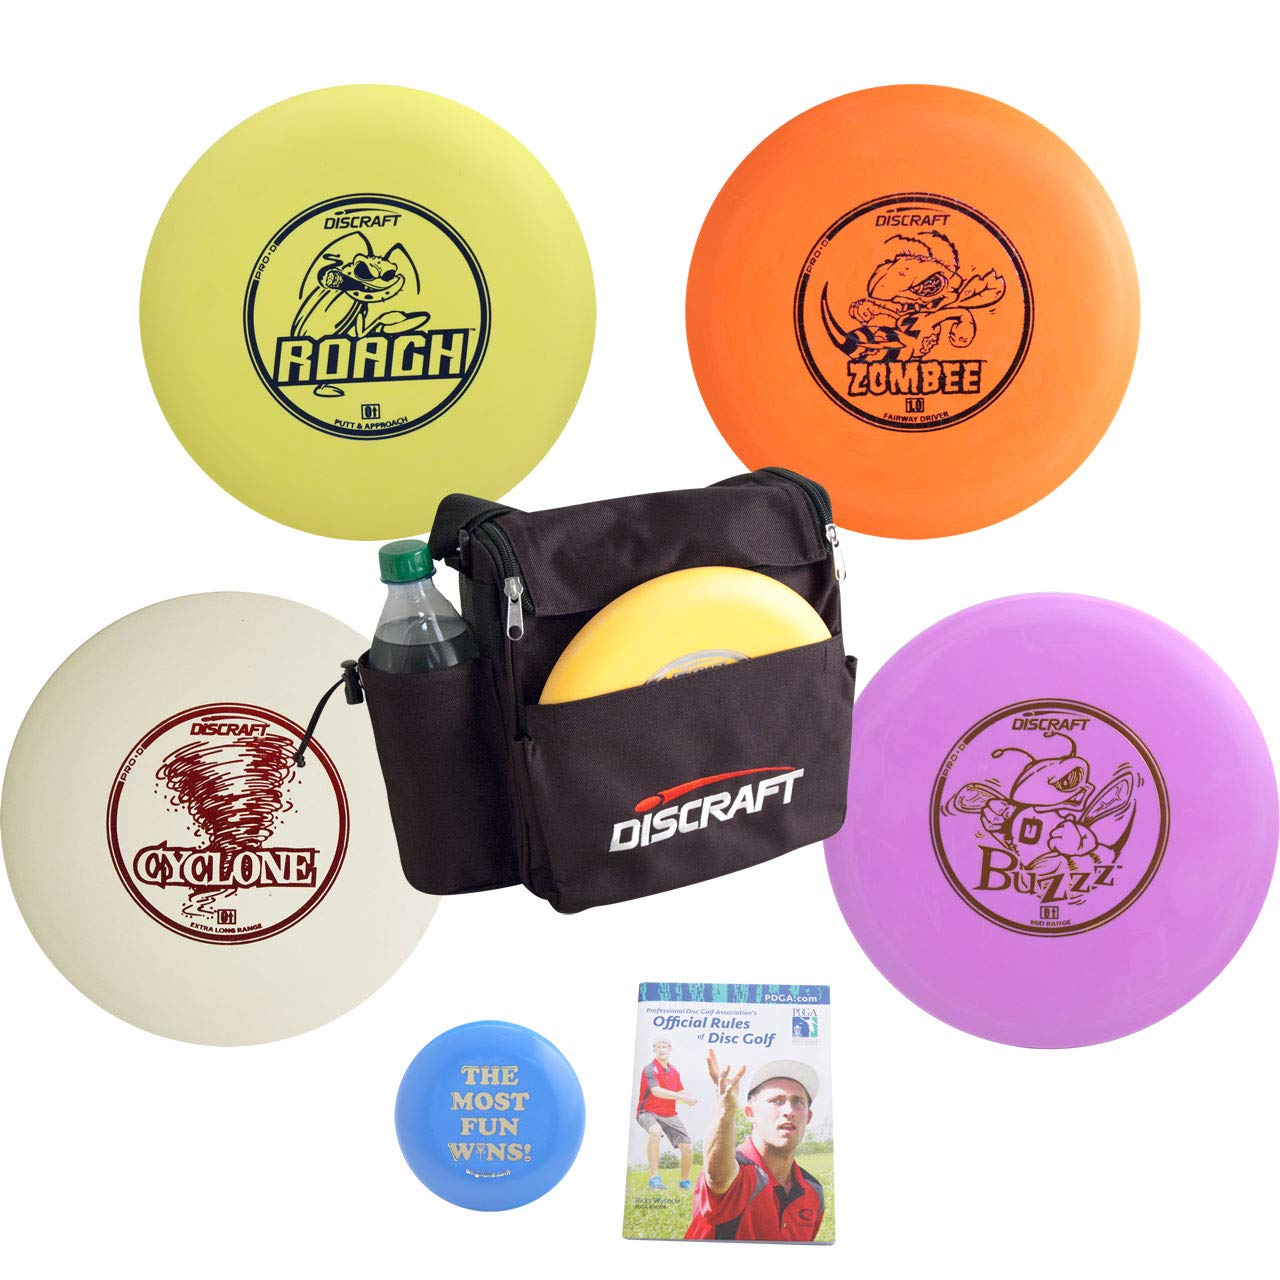 Discraft Complete Disc Golf Gift Set Bundle - Weekender Bag, 4 Discs + Mini Marker Disc & Rules (Colors May Vary) (4 Discs (Distance Driver, Fairway, mid-Range, Putter, Extras)) by Discraft